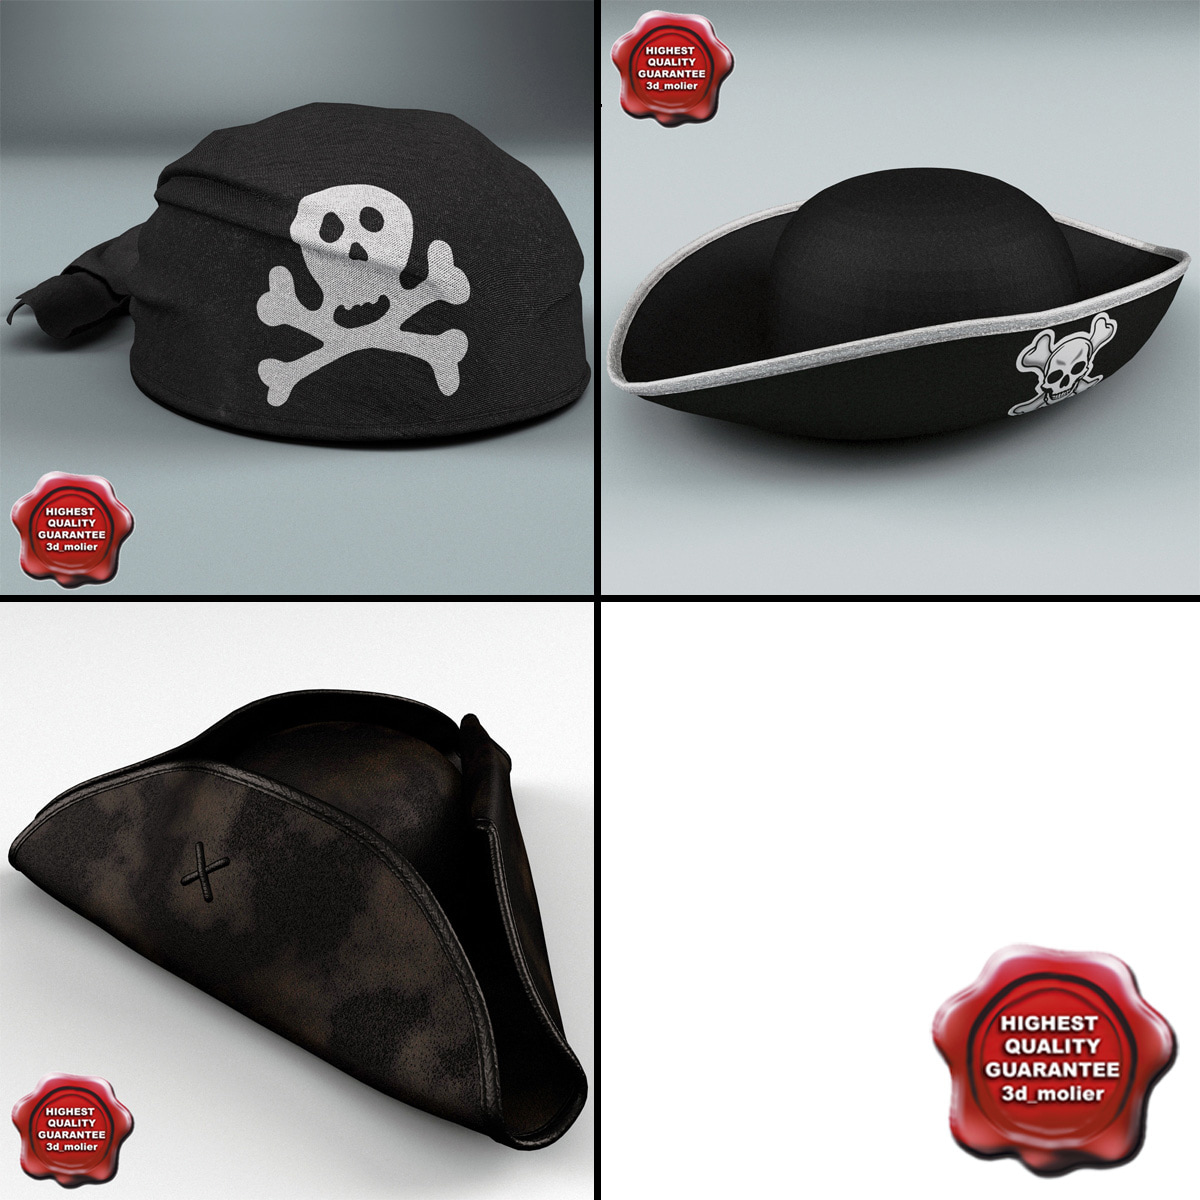 Pirate_Hats_Collection_00.jpg